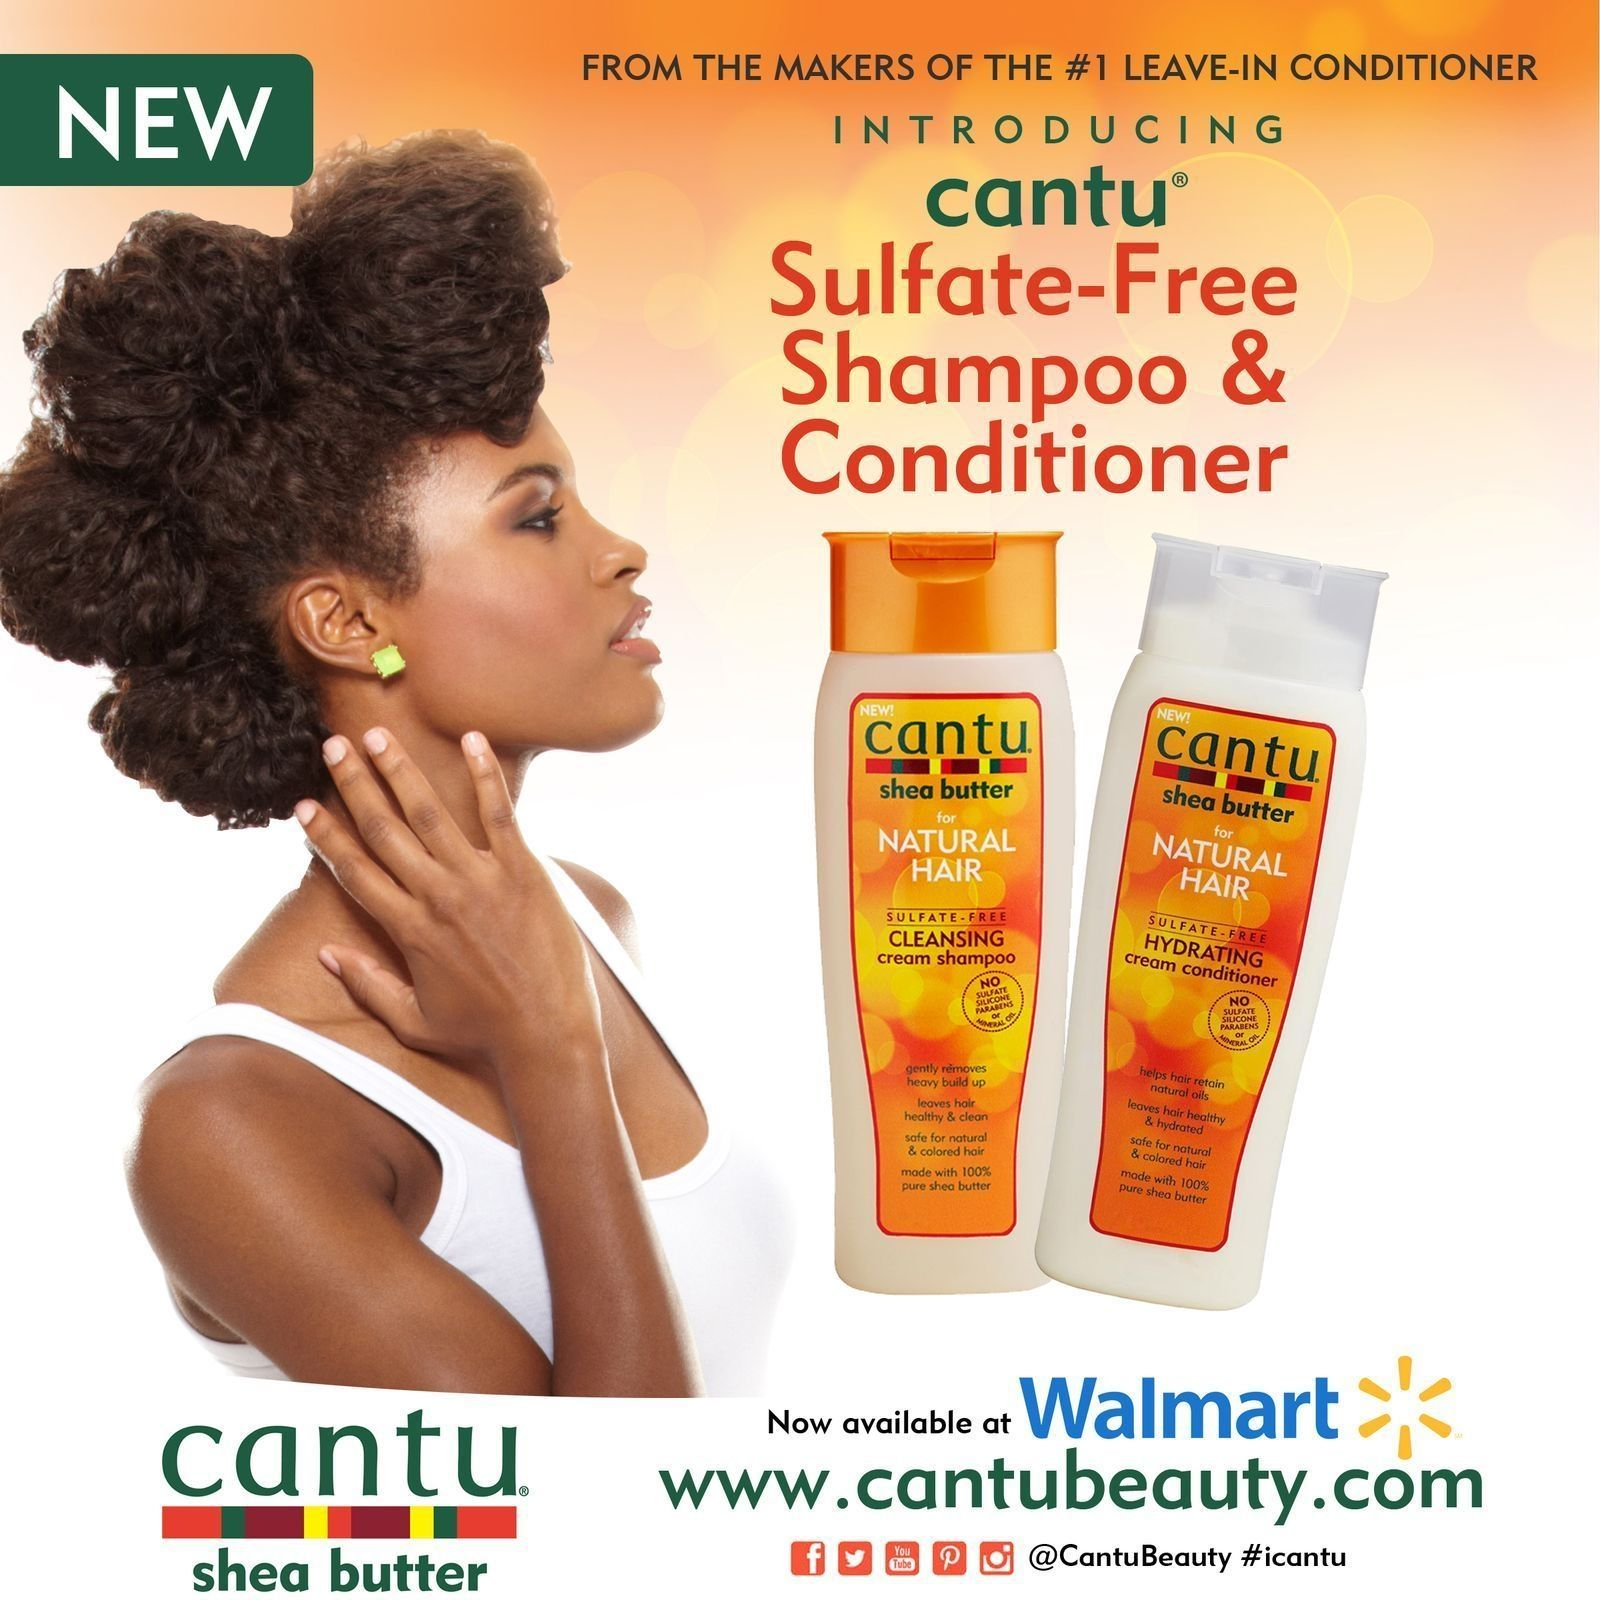 Great news! Our SulfateFree Shampoo & Conditioner will be